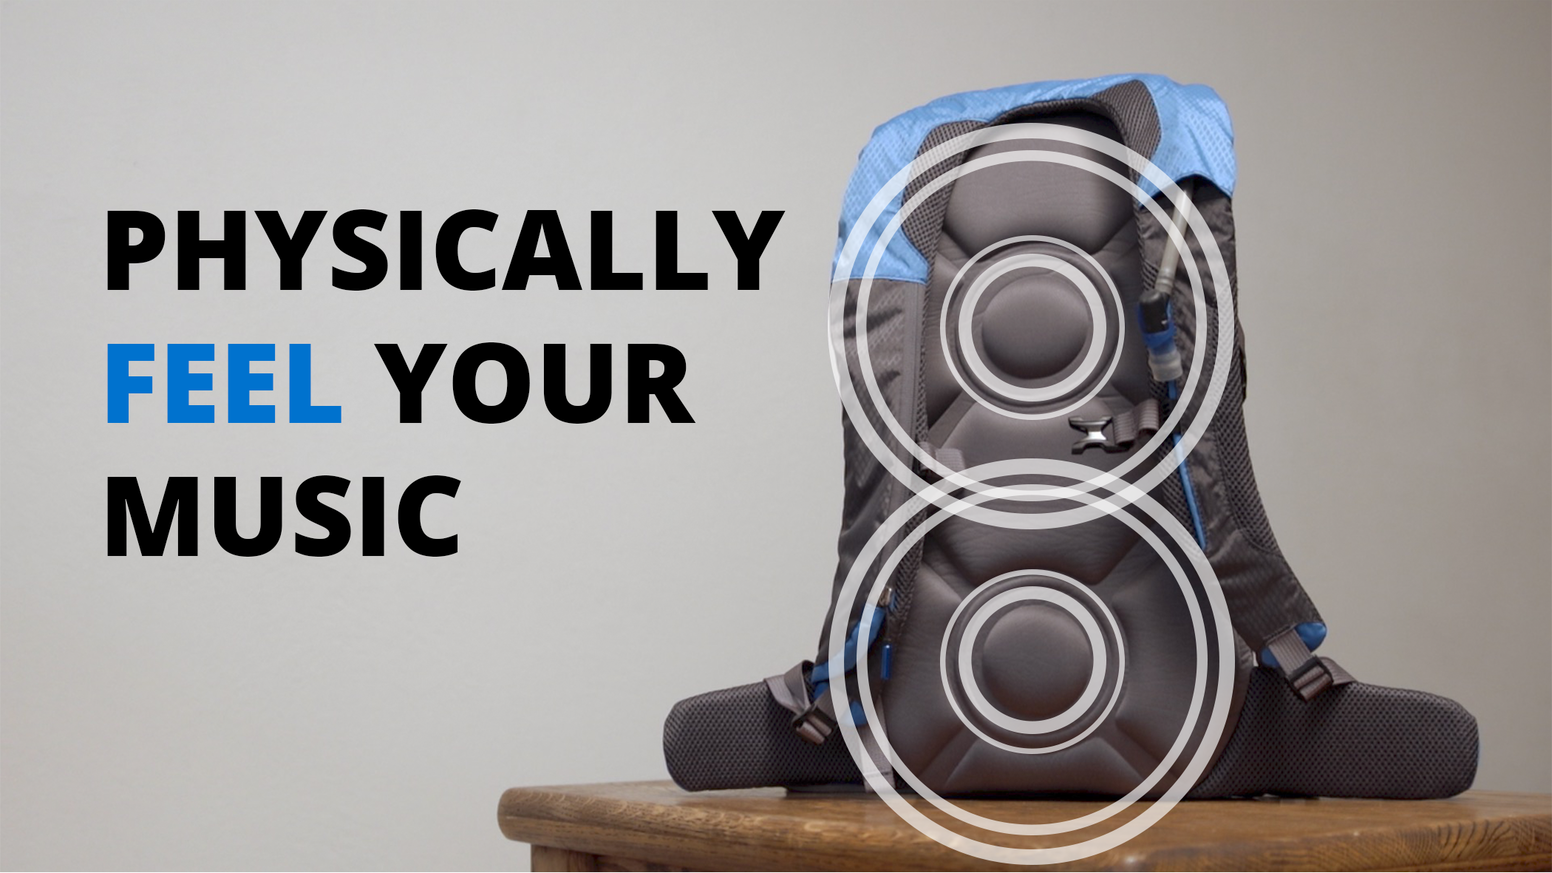 Baserock is an insert for a backpack that allows you to feel the music that you are listening to, both at a live show, or with your phone and headphones. Use coupon code 10KS for a 10% discount on our website!